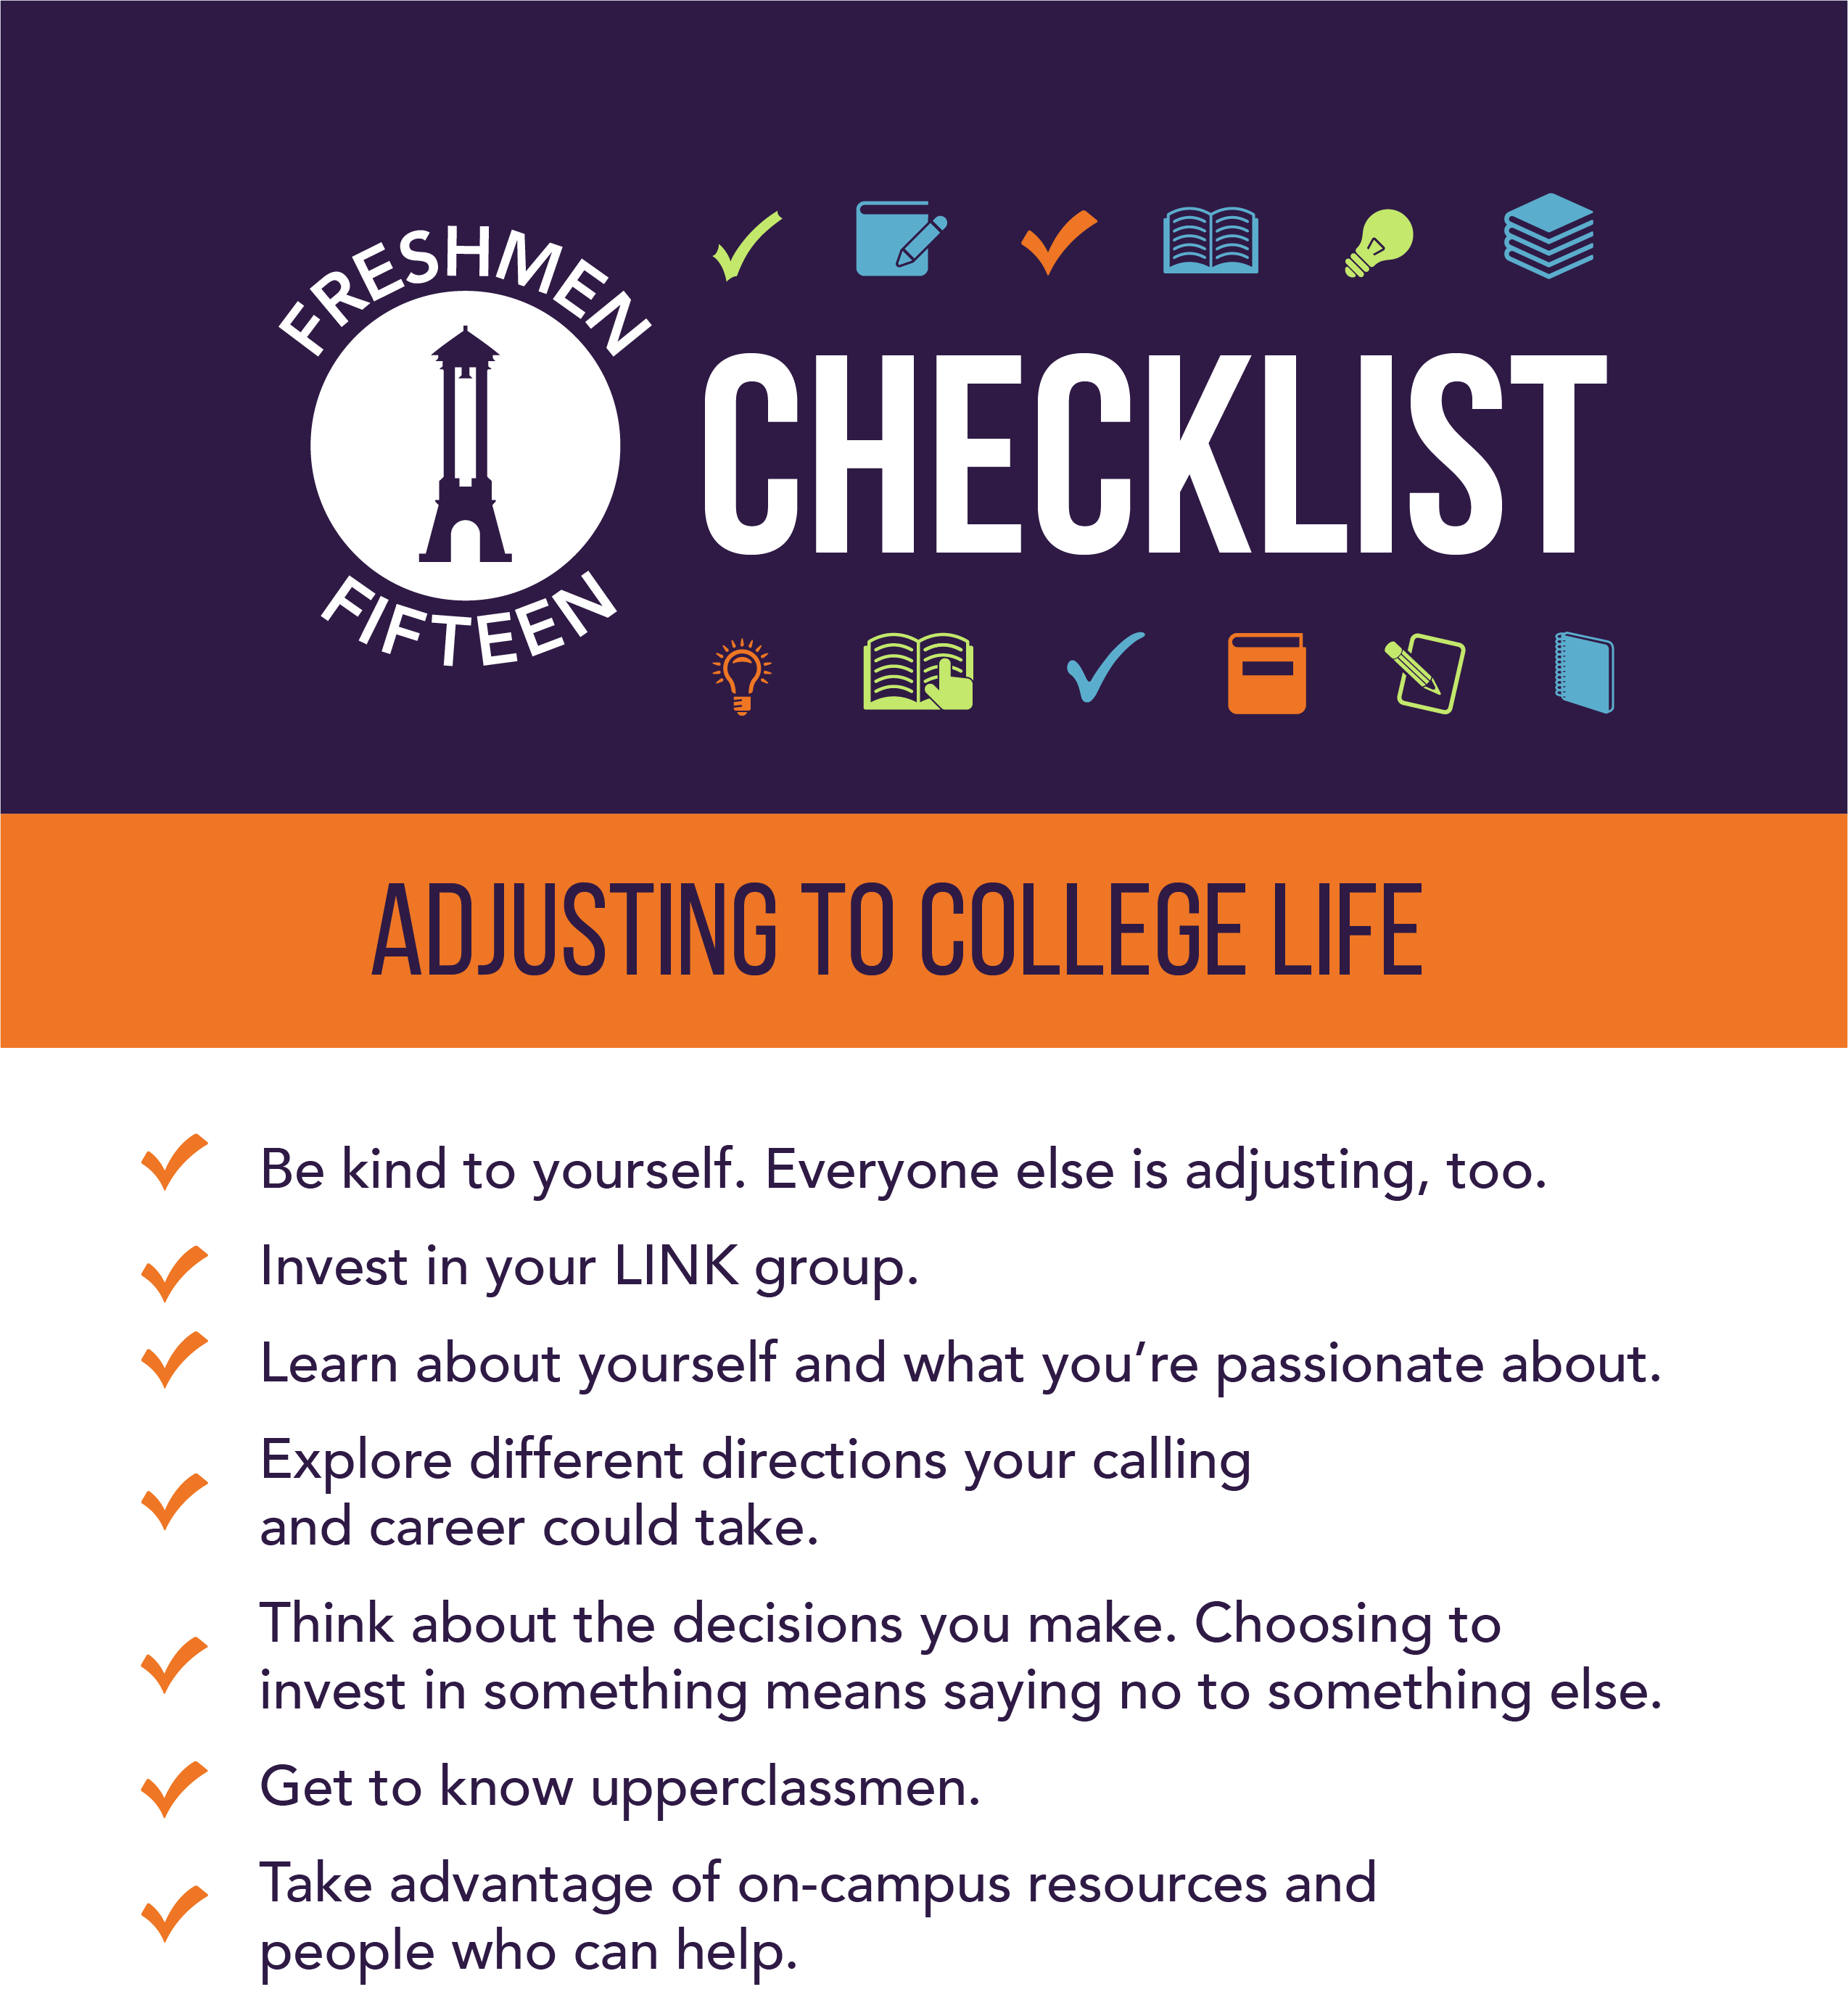 Freshmen 15_Checklist_adjusting